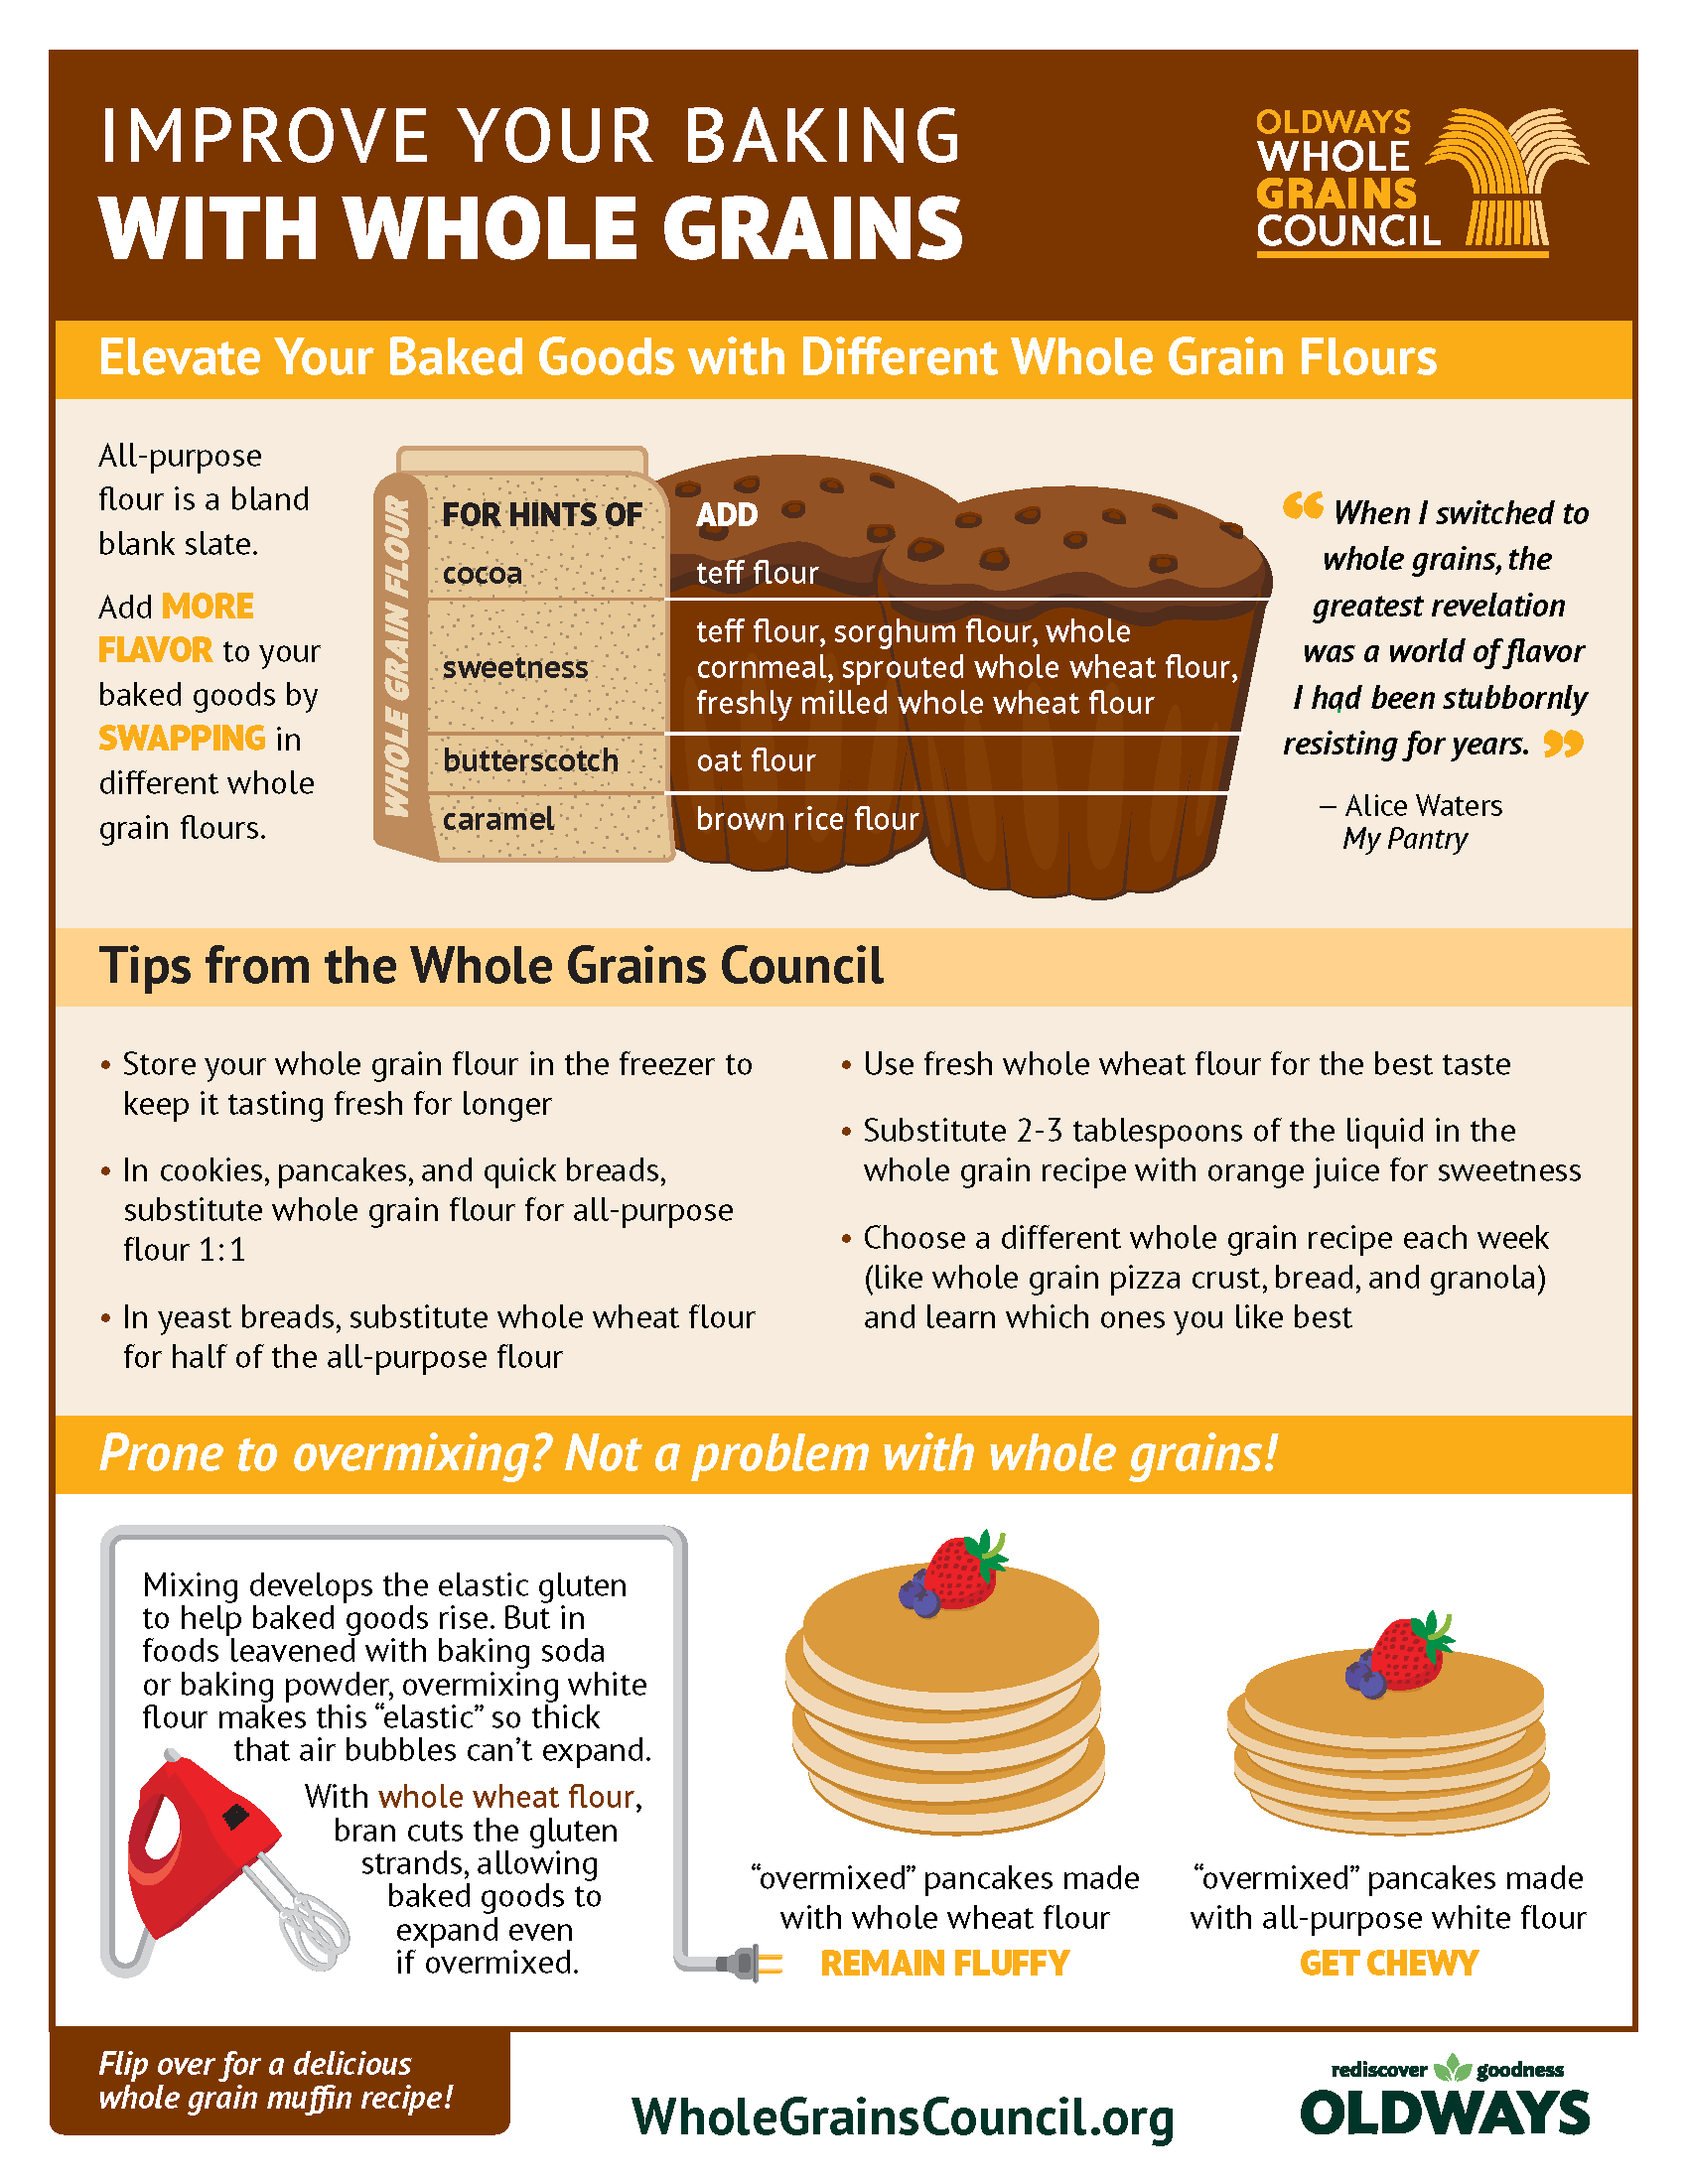 WholeGrainBaking_052019_Page_1.png